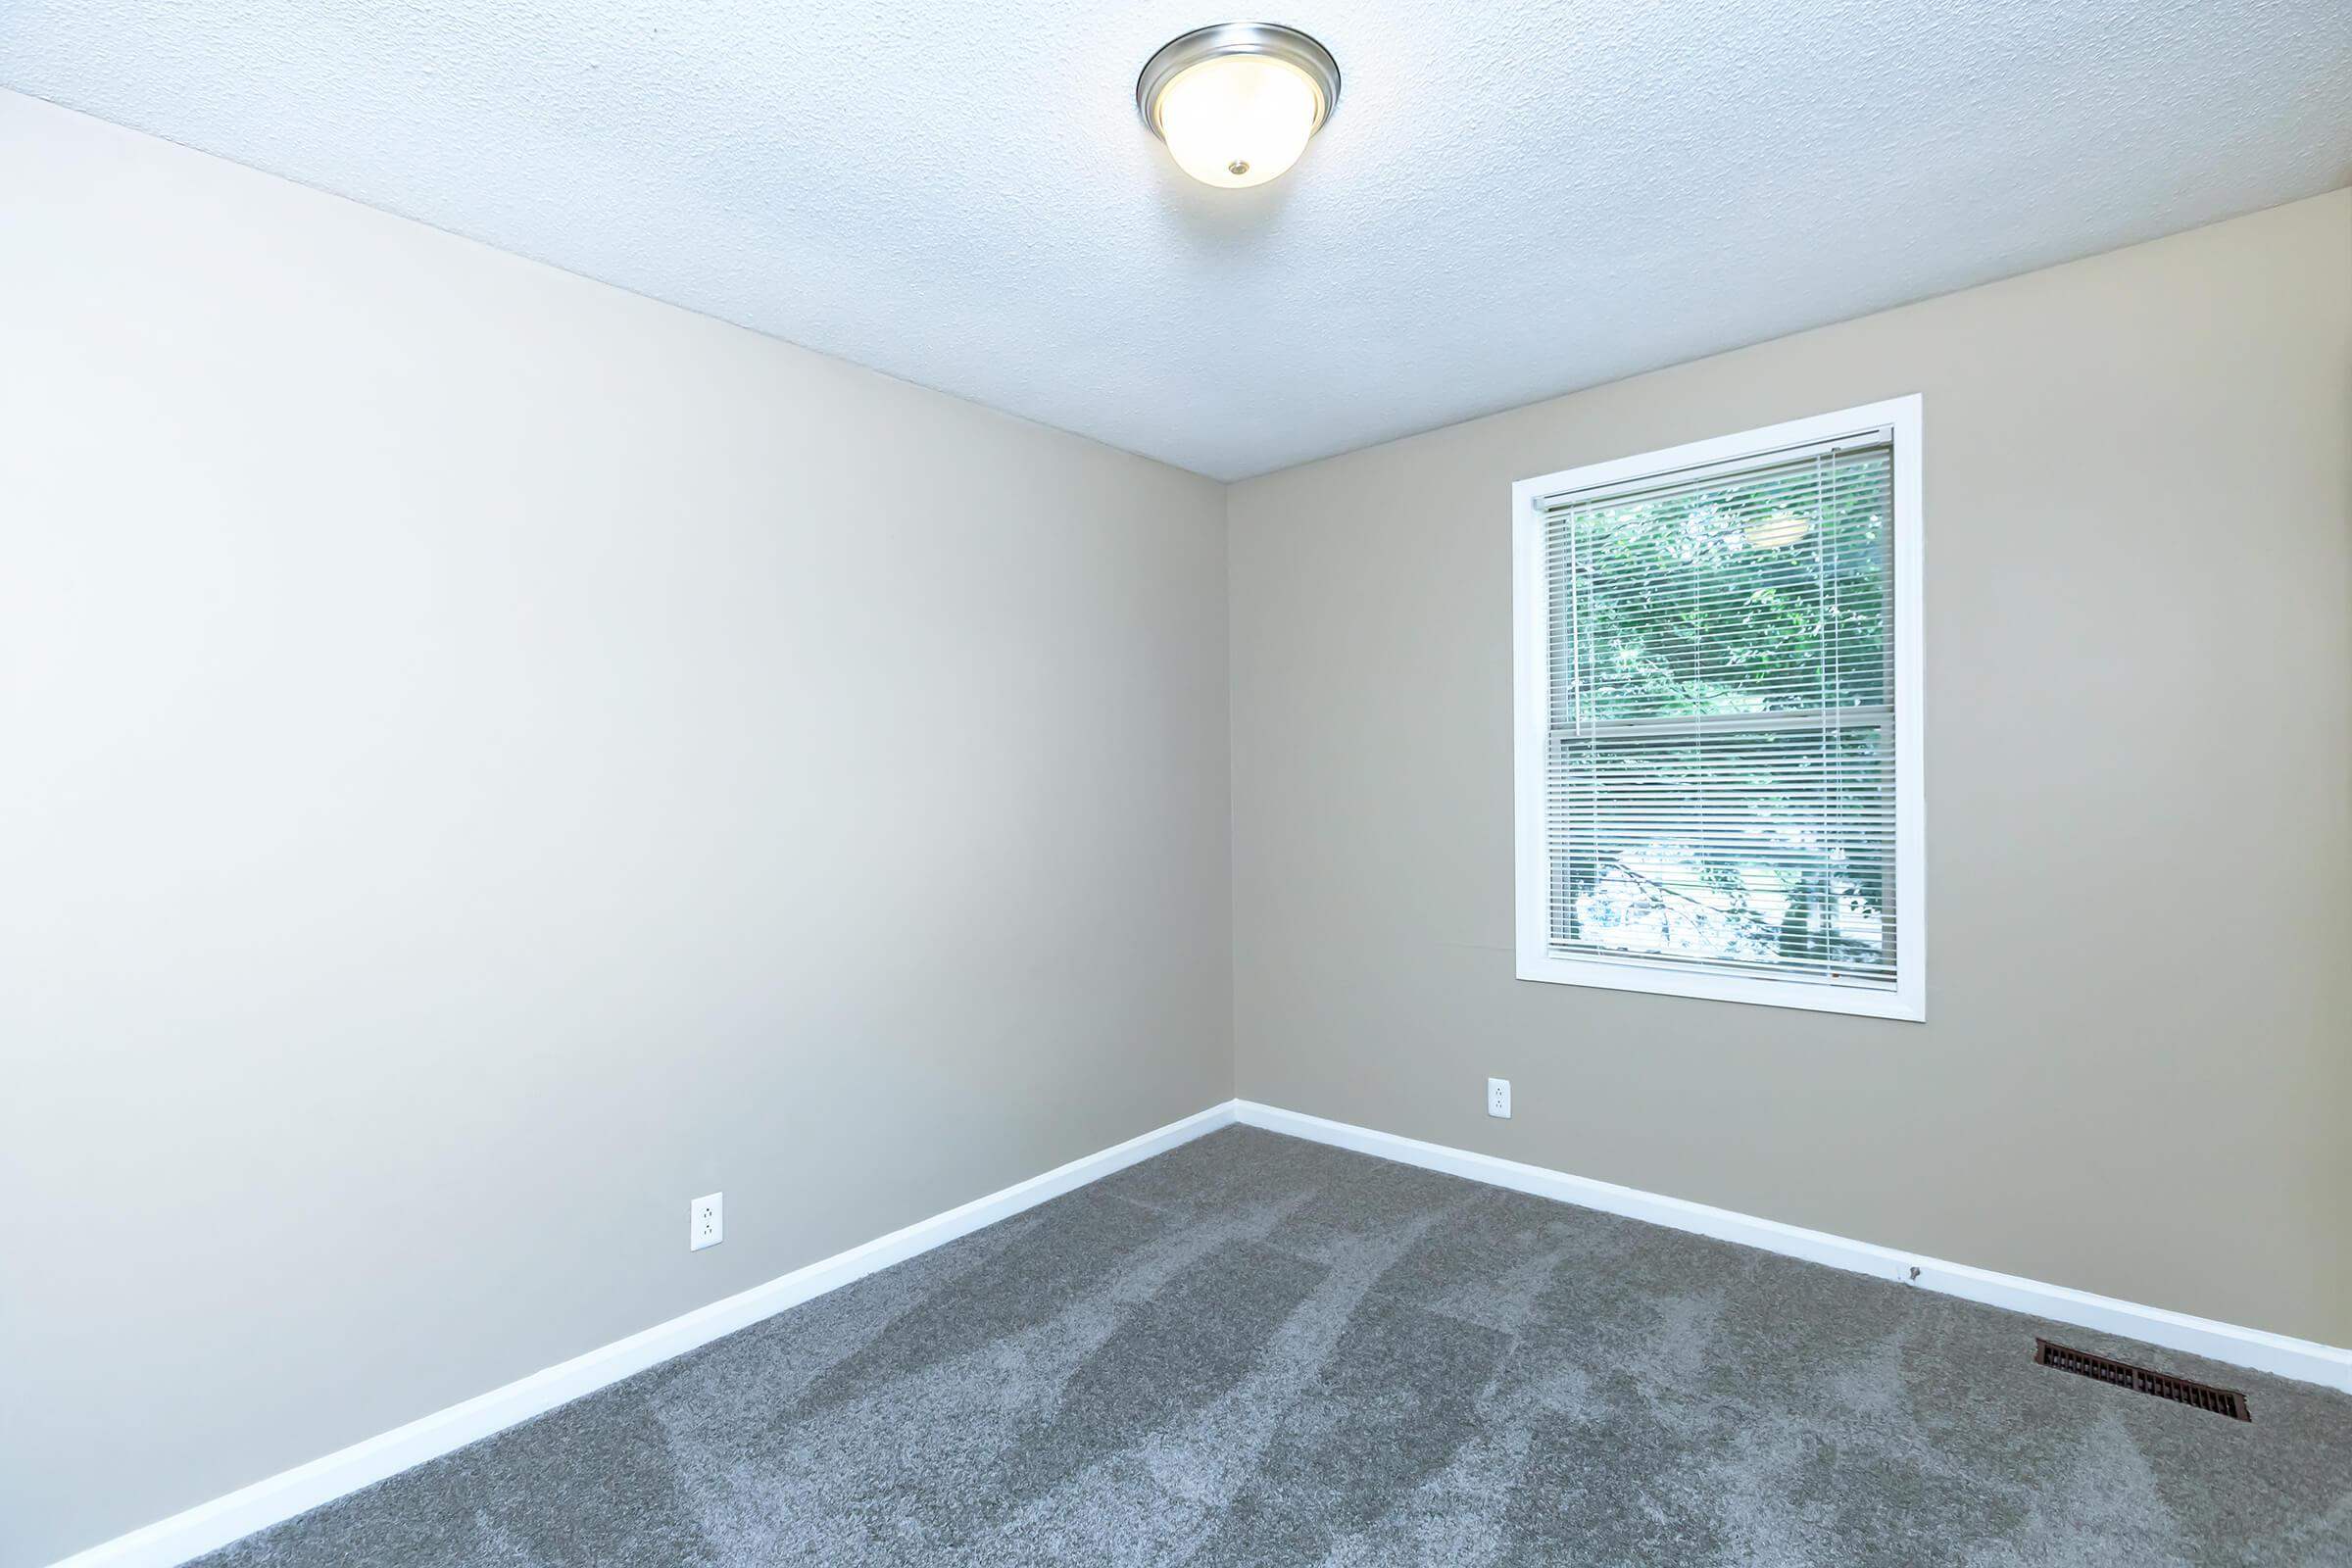 Make this room your own here at The Residences at 1671 Campbell in Clarksville, Tennessee